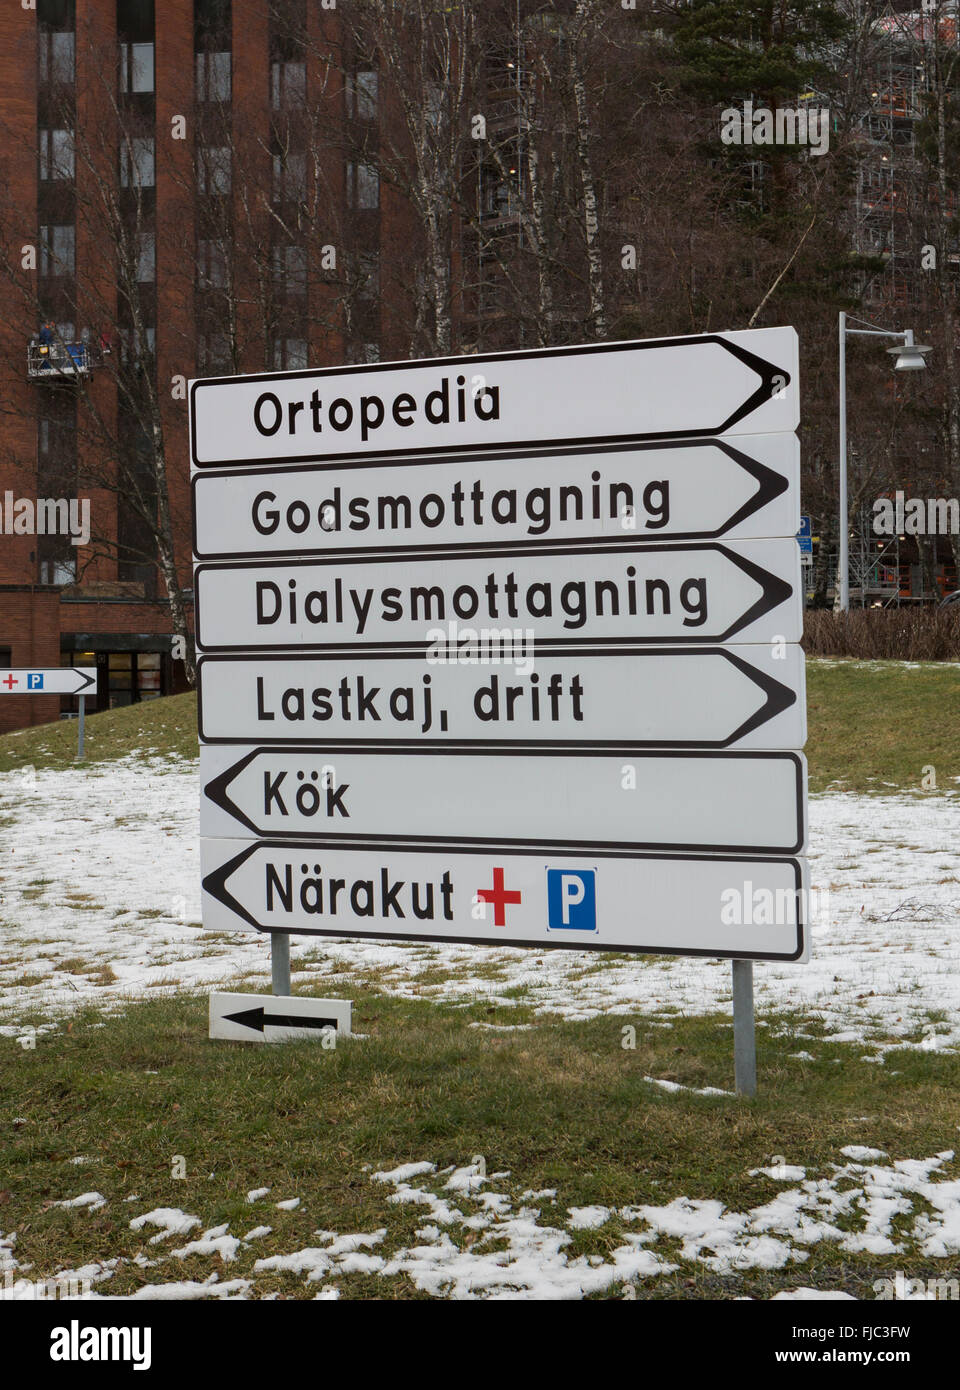 Reference to the emergency room at the hospital Löwenströmska, Upplands Väsby - Stock Image